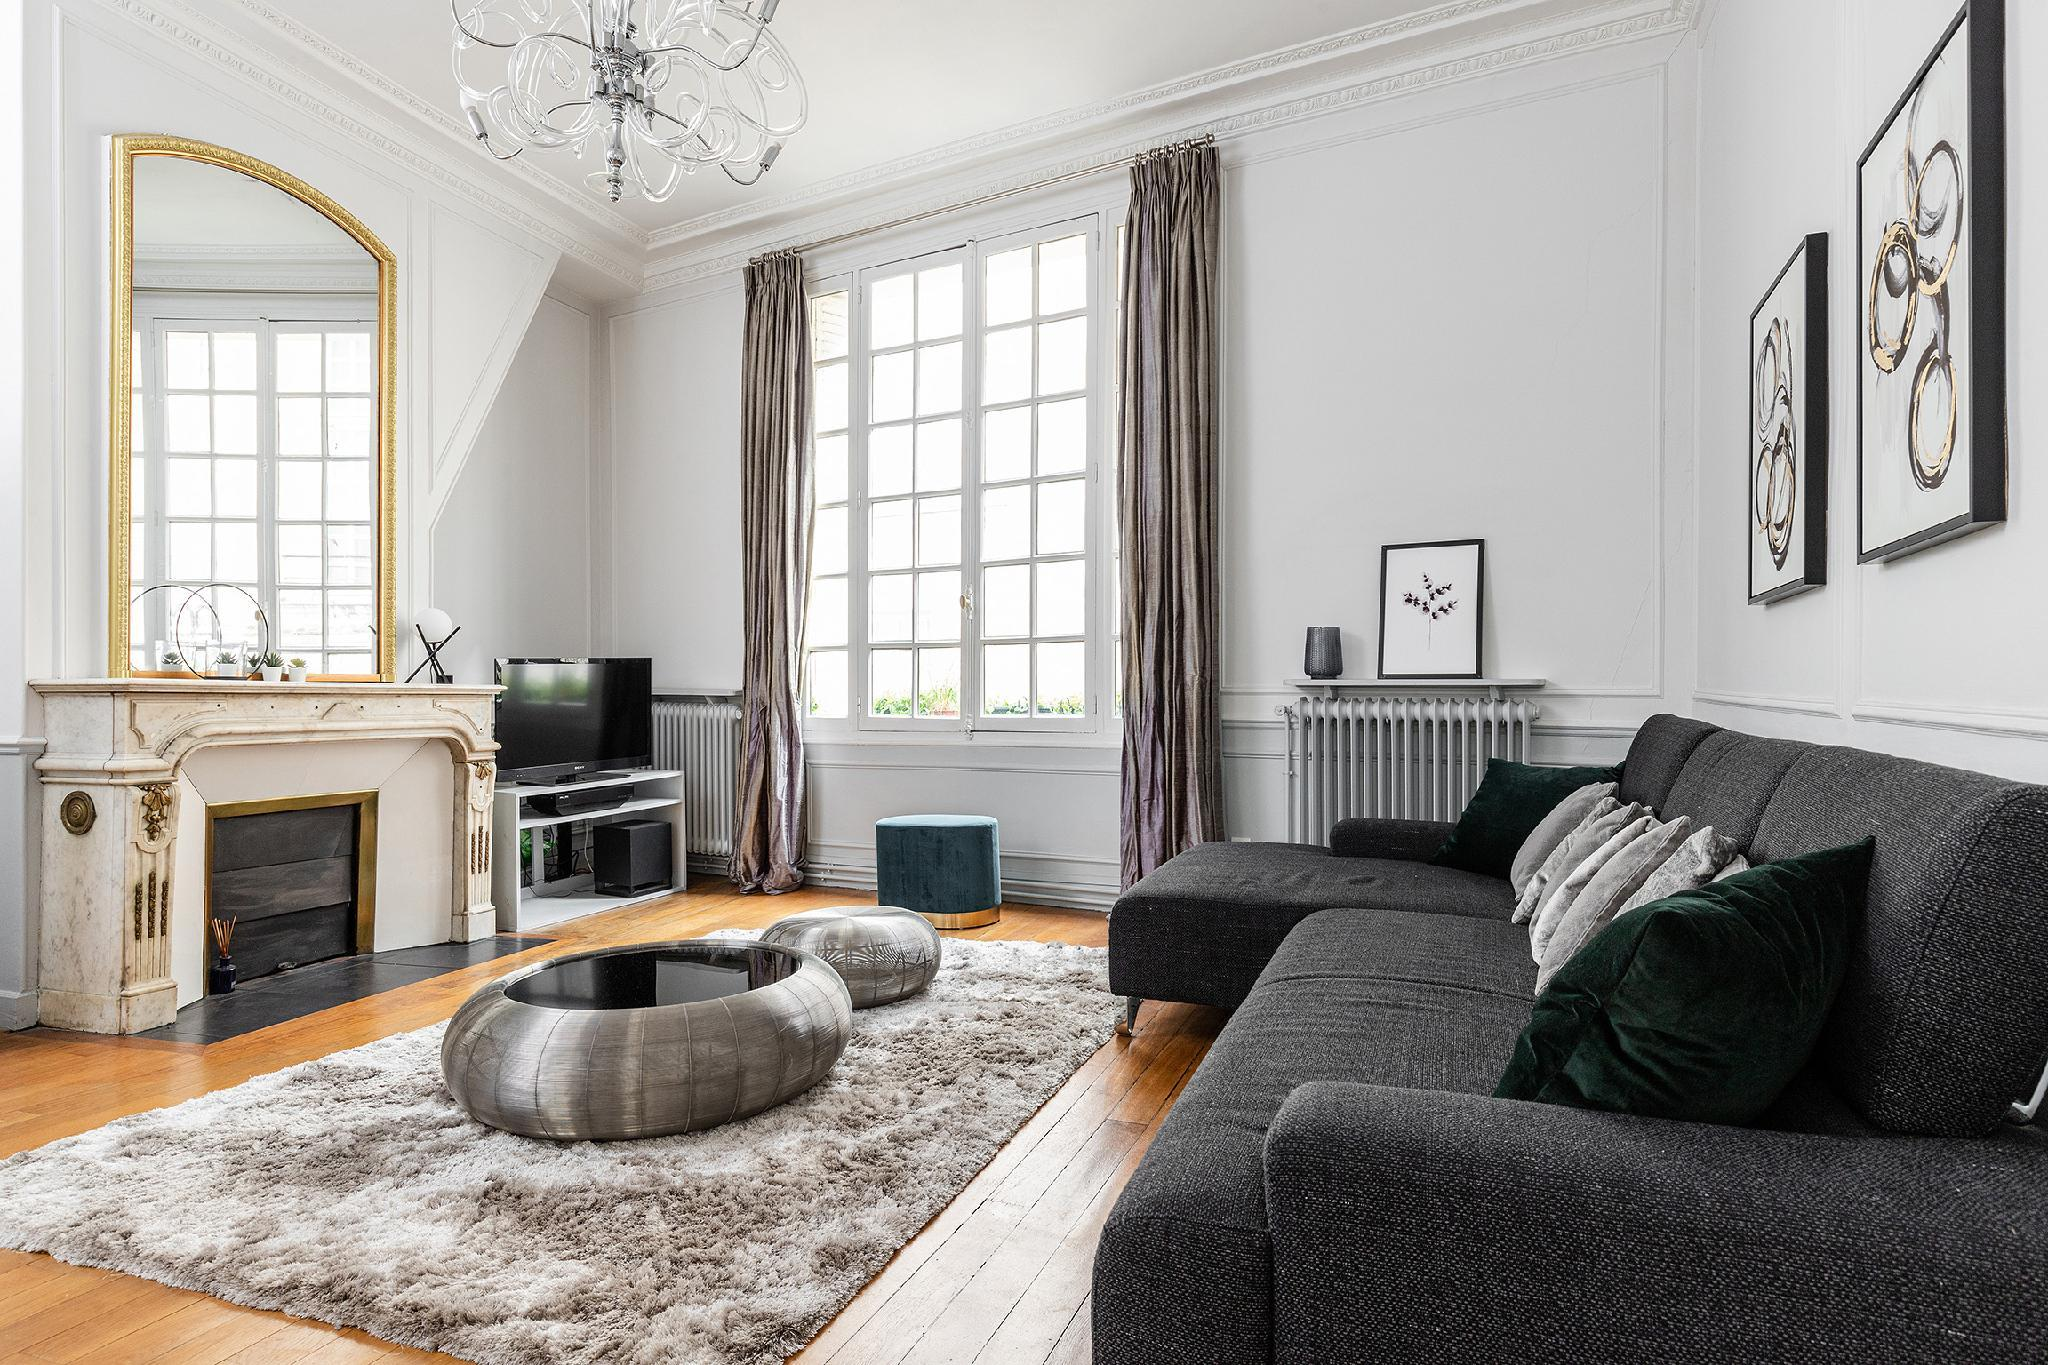 IN THE HEART OF SAINT GERMAIN- EXCLUSIVE 2BR FLAT